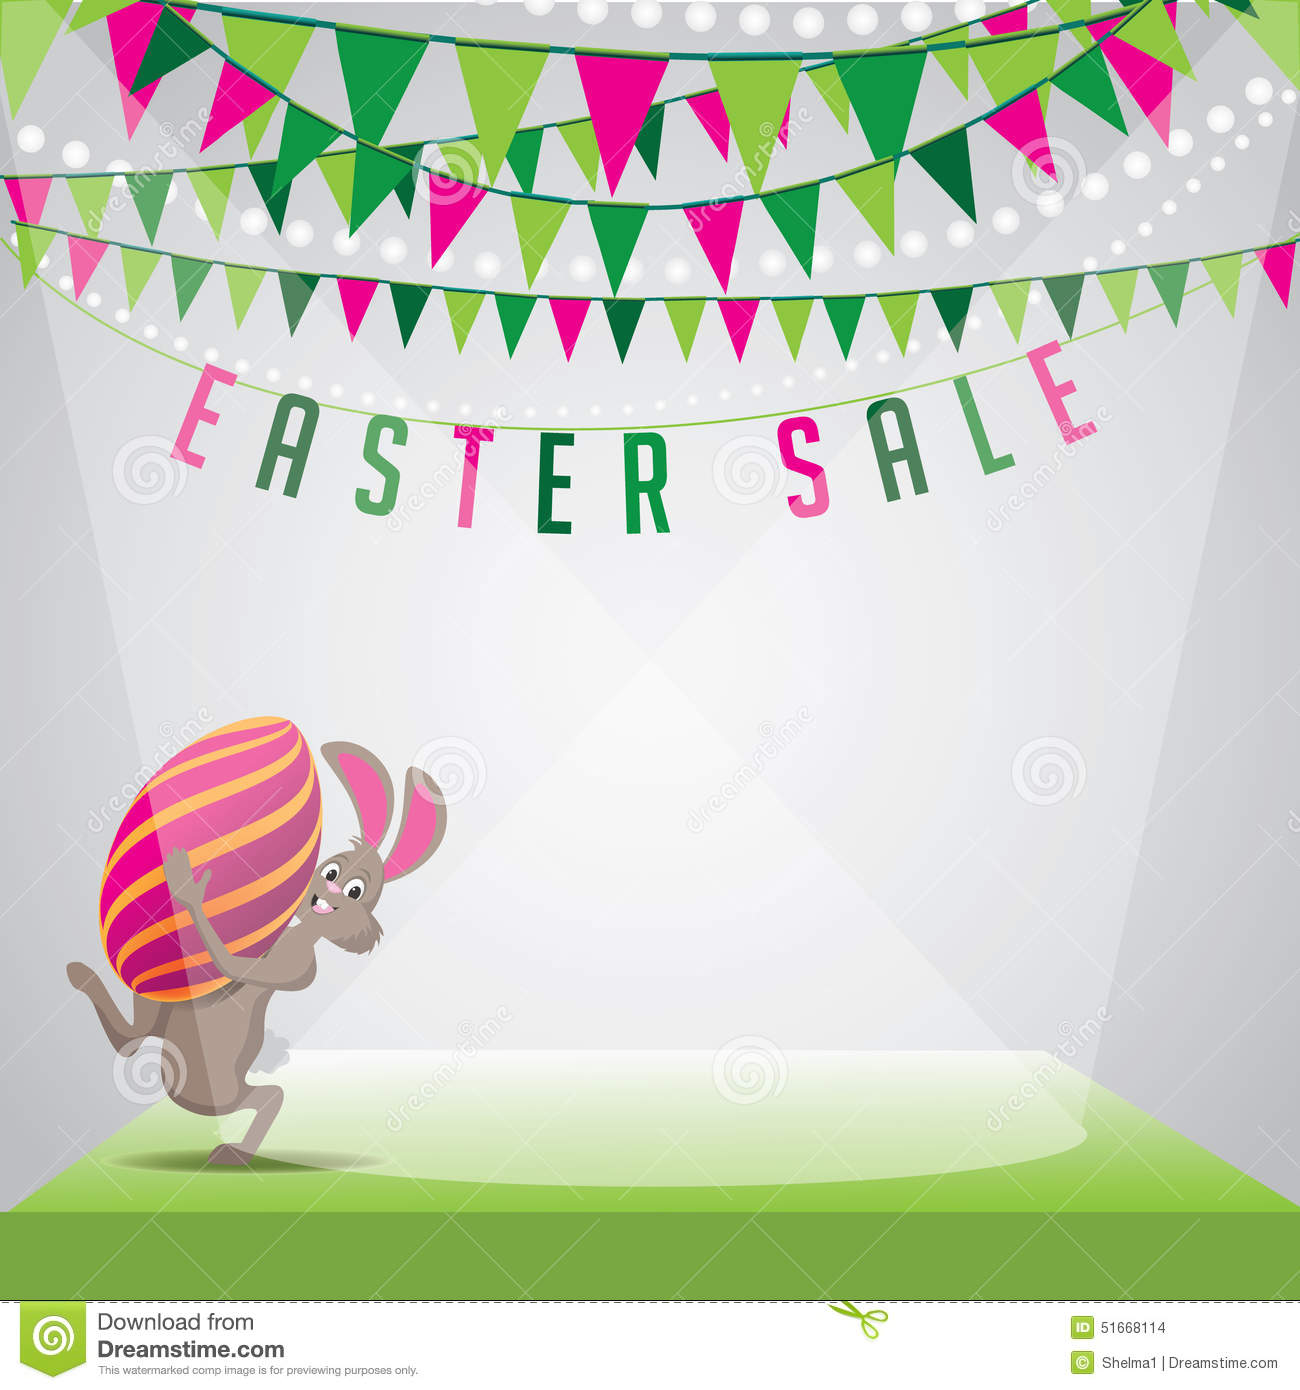 Easter Sale: Easter Sale Bunny Egg And Bunting Background EPS 10 Vector